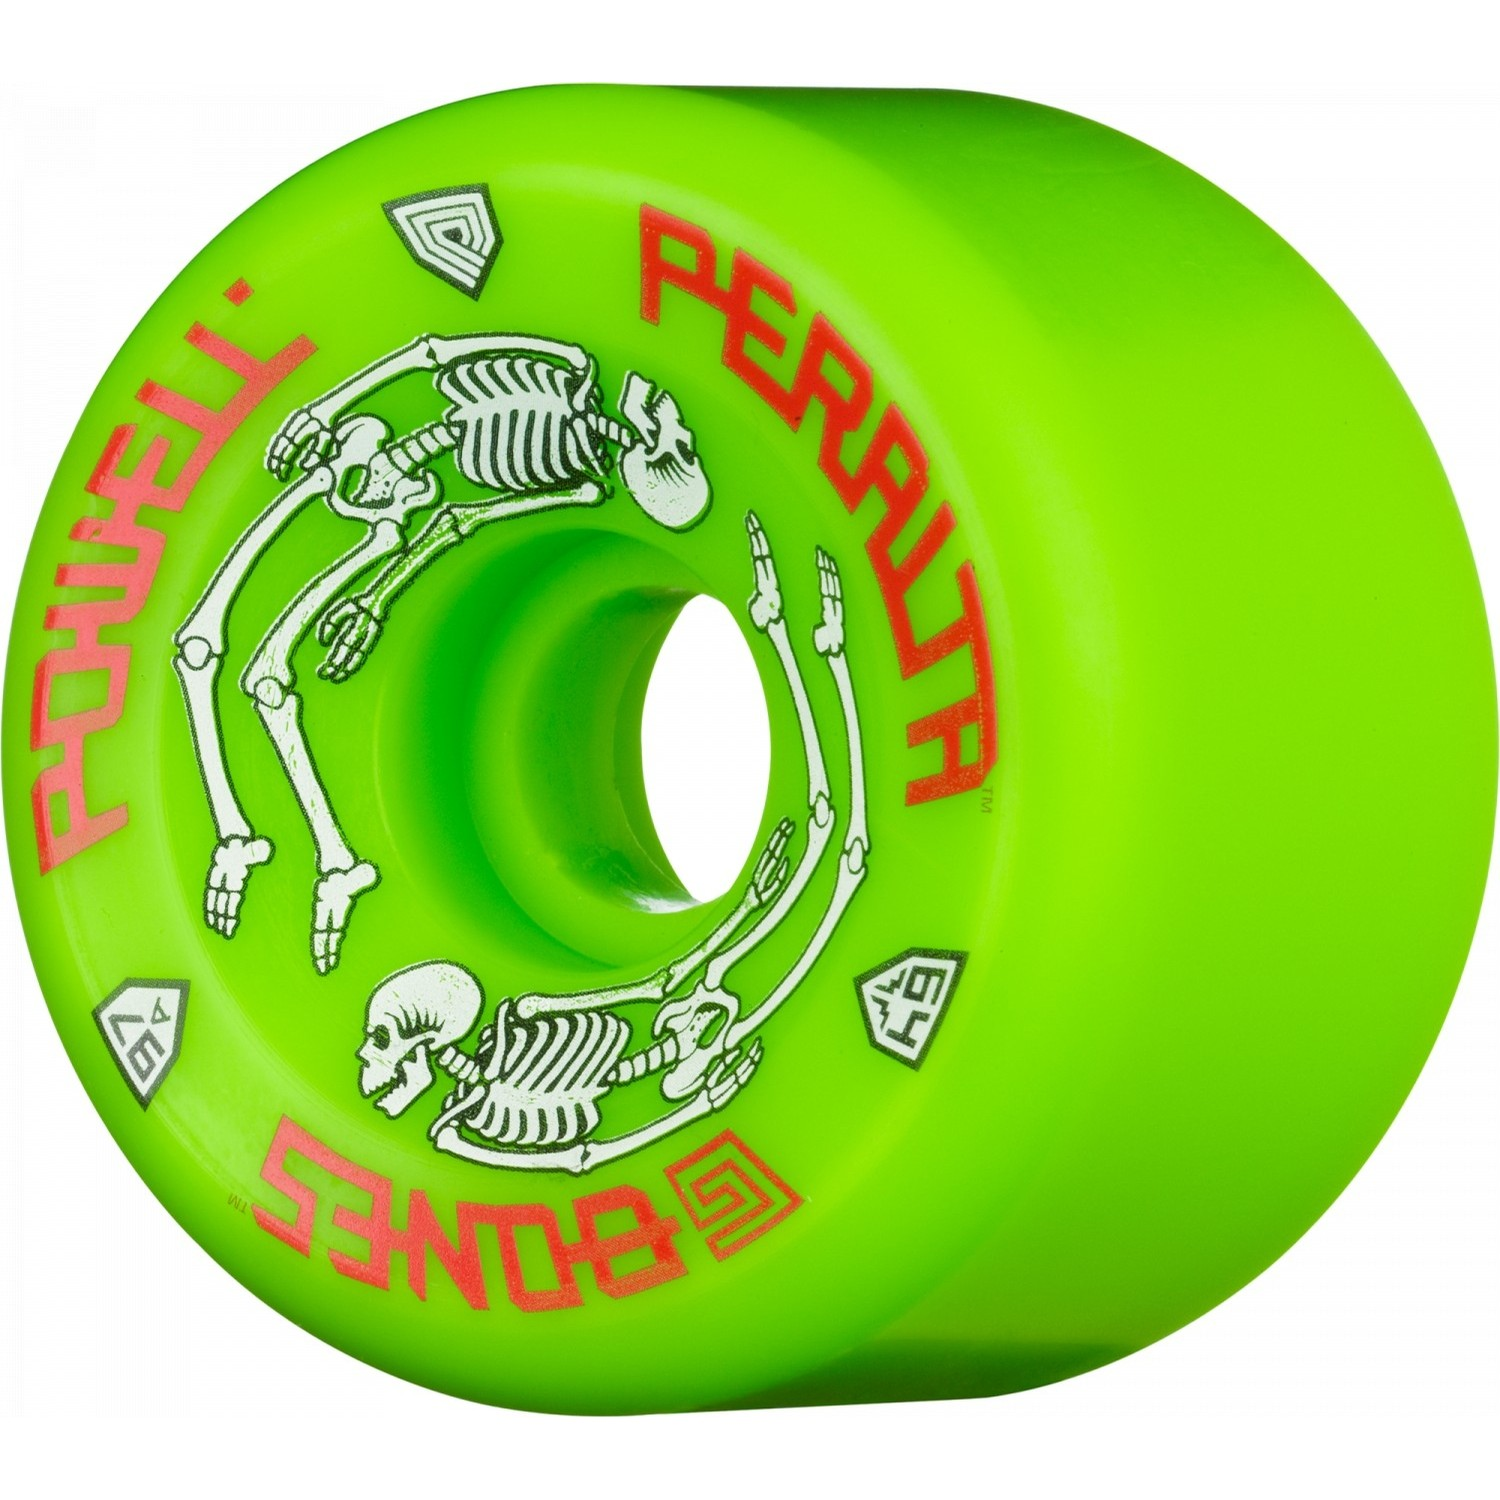 G-Bones Green Wheels